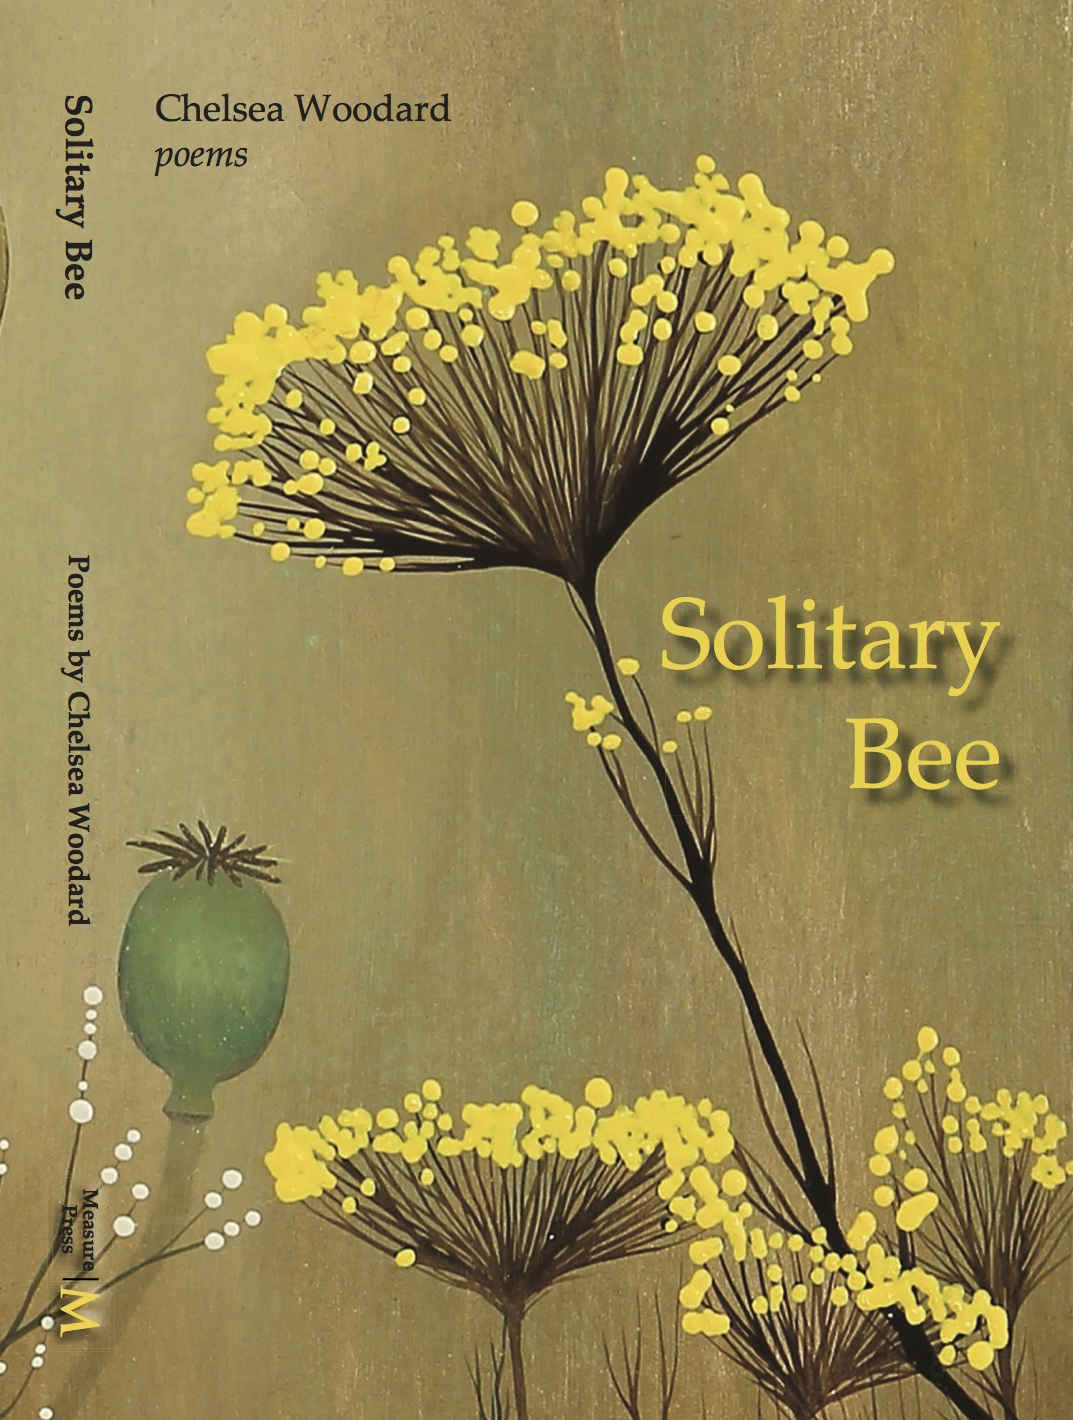 - PRAISE FOR SOLITARY BEE:Chelsea Woodard has written a grown woman's book of poems - meaning a chronicle of how the world looks and feels from the perspectives of felt truth and family history. Ms. Woodard's view is rural, New England-ish, possessed of Dickinson's intensity in nature's fact and Emerson's loving faith in good turns of heart and song. She writes an elegant sentence, has a painterly eye, commands narrative as she might have once steered horse-and-plow, and is as soaked in her place as was Mr. Frost. What more could any reader want than the memorable poems found in Solitary Bee? One feels her confident voice, her touch - and thinks this, too, is my life.              - Dave Smith Chelsea Woodard's Solitary Bee is a gorgeous book by a truly gifted writer. She has a painter's eye for color and detail and the easygoing eloquence to animate the people and the places of her life. In poem after poem, in which, like the collection itself,